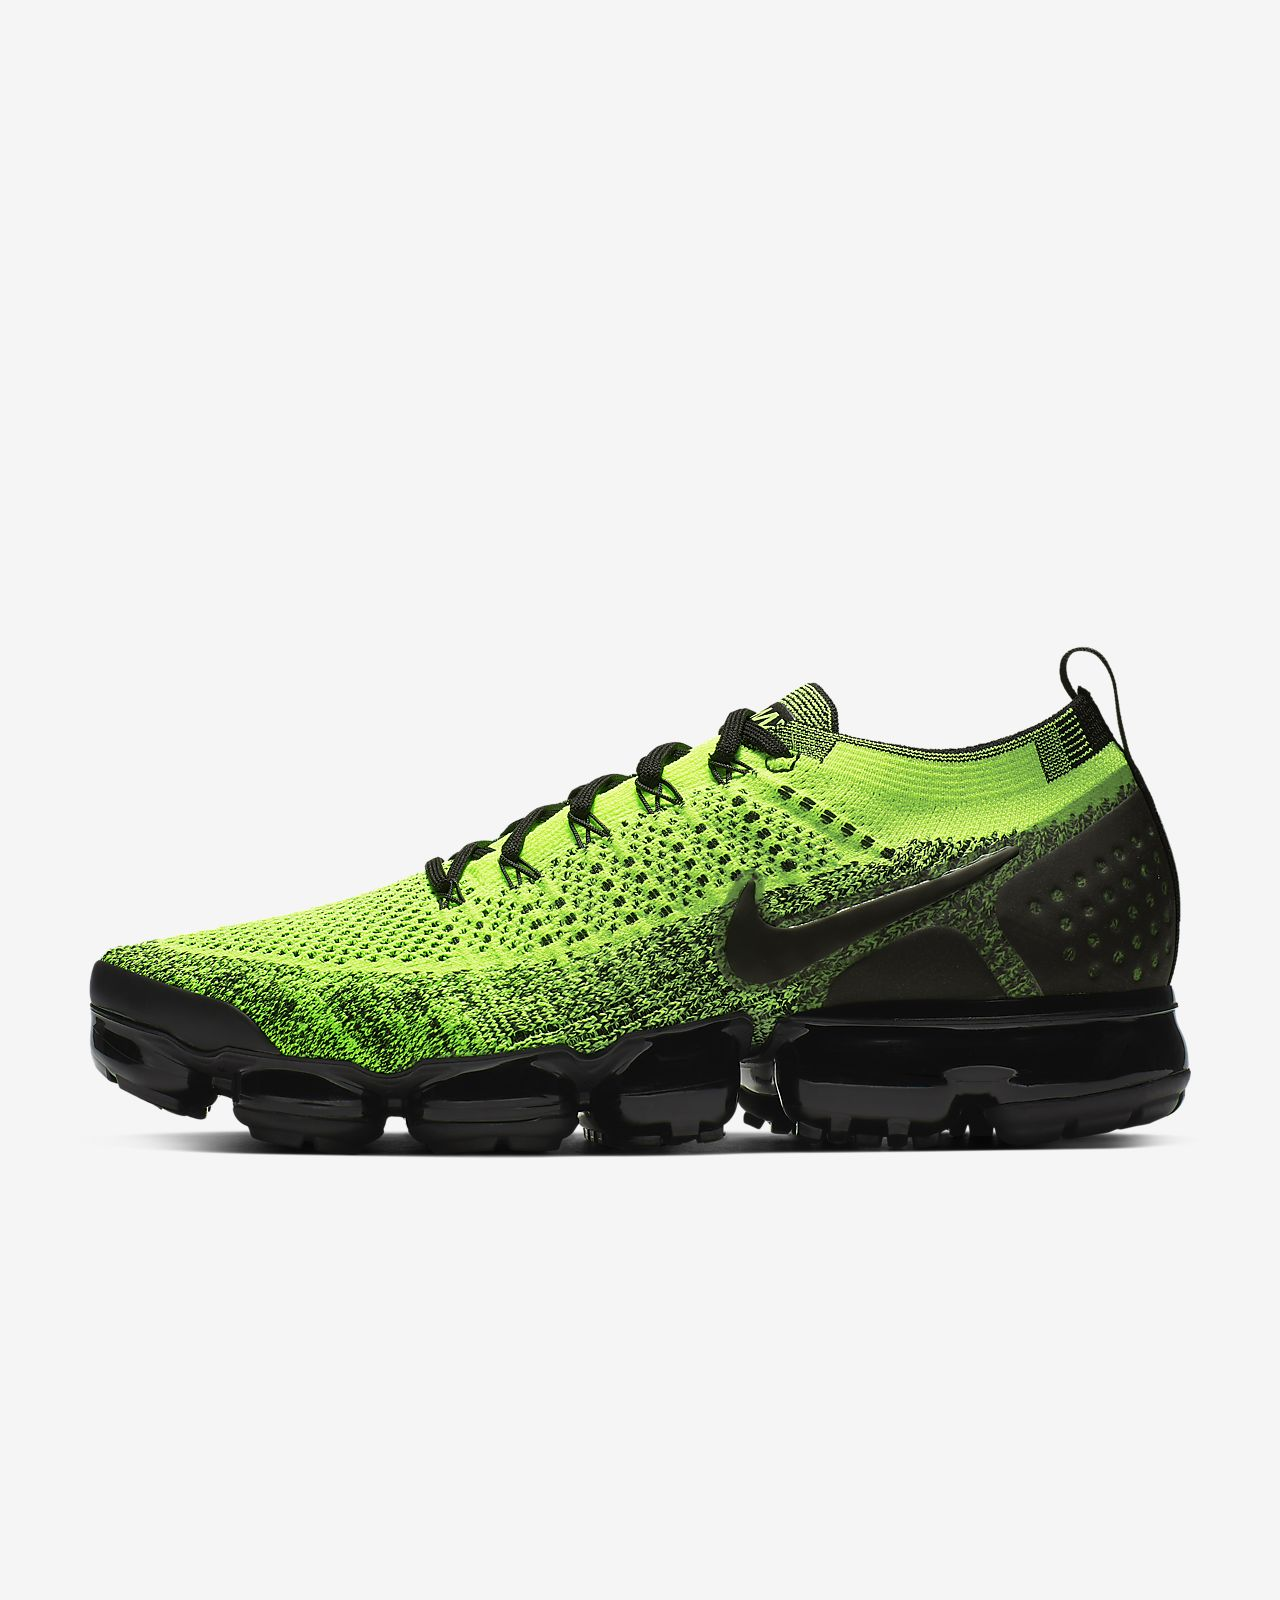 reputable site bbf33 1033d Shoe. Nike Air VaporMax Flyknit 2